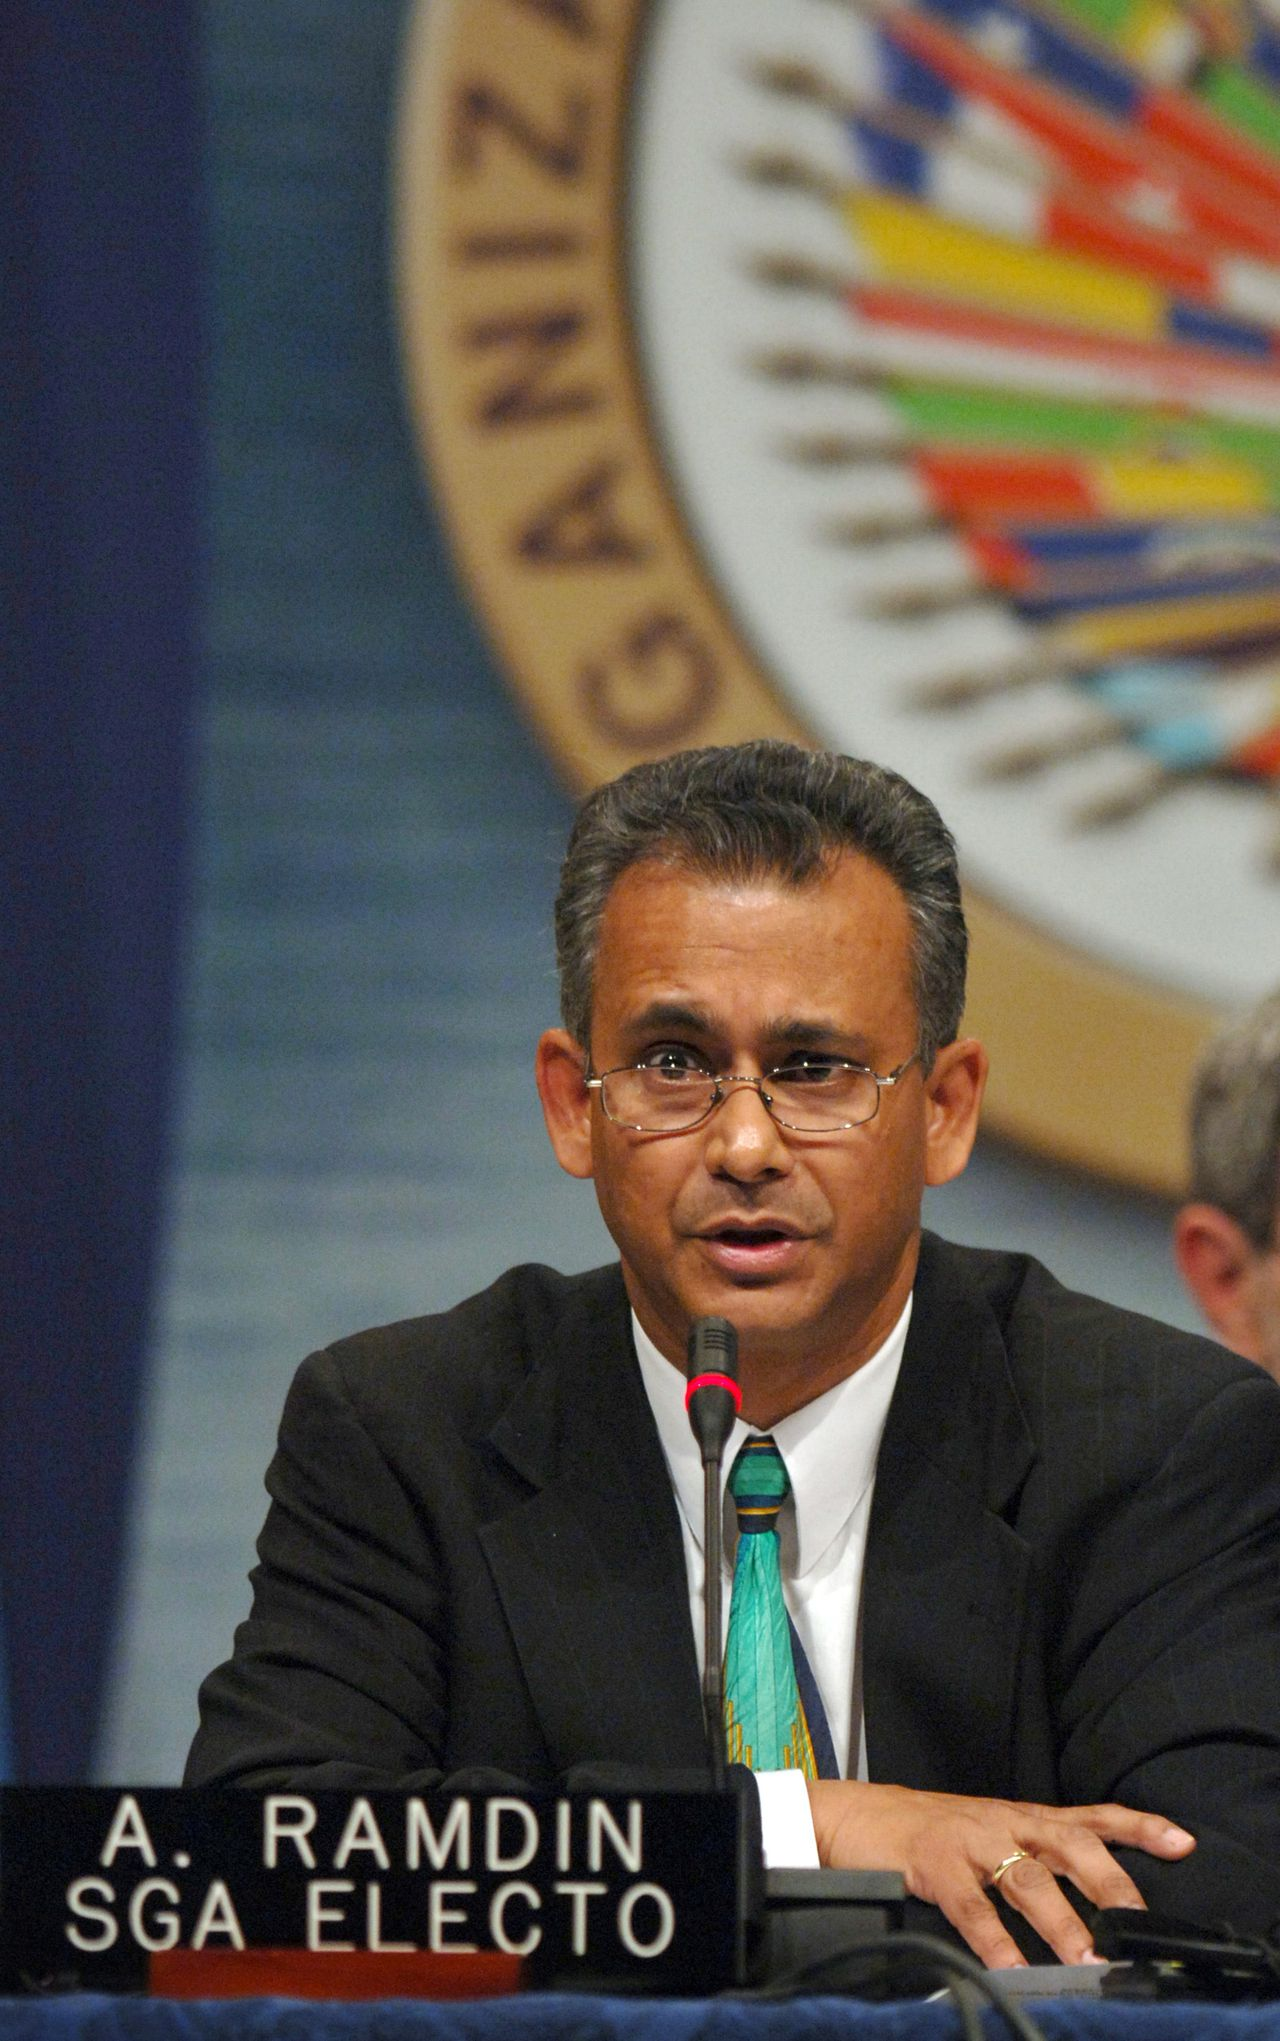 The new Assistant Secretary General of the Organization of American States Albert Ramchand Ramdin from the Republic of Suriname makes his first public statement after being voted in during the fourth plenary session of the 35th General Assembly of the OAS in Fort Lauderdale, Florida, Tuesday, June 7, 2005. Photographer: Richard Sheinwald/Bloomberg News